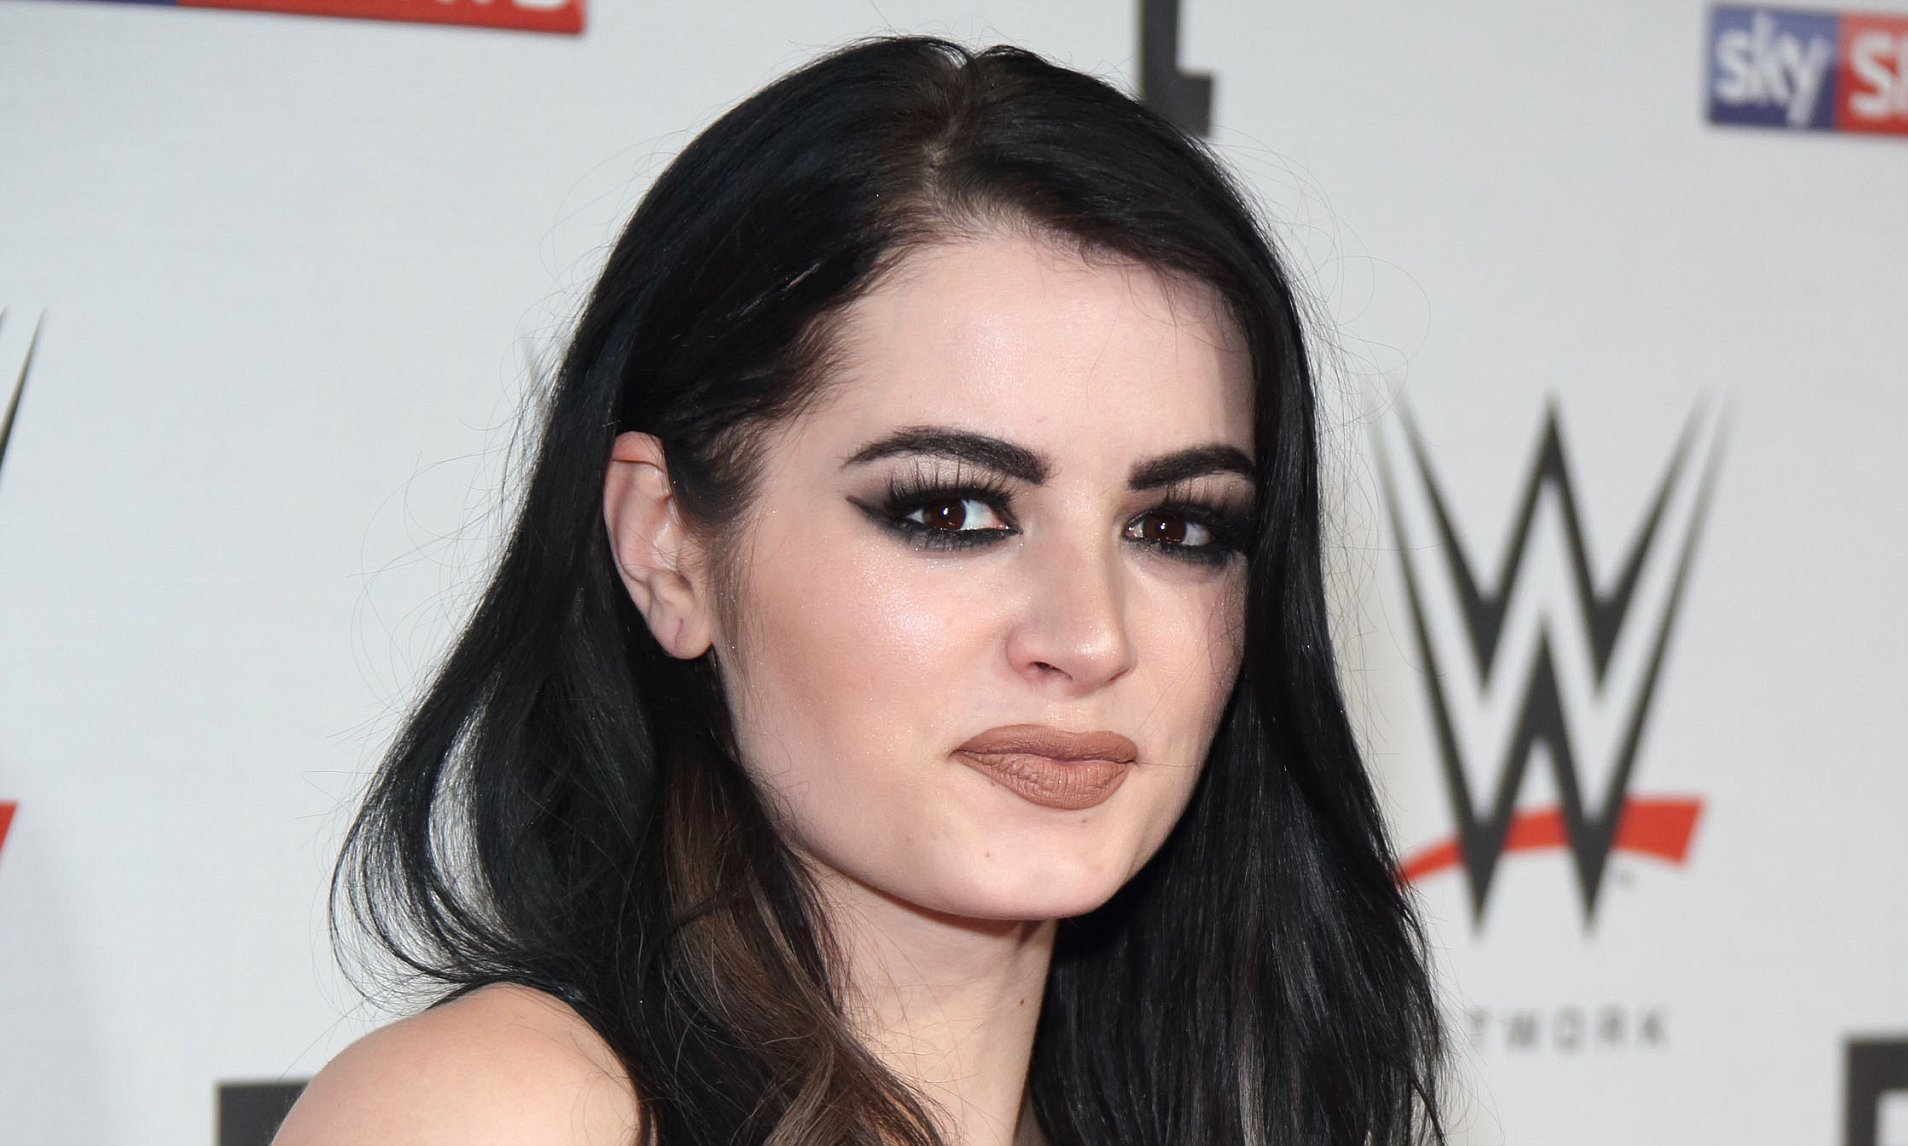 WWE star Paige's sex tape with Brad Maddox leaked | Daily ...